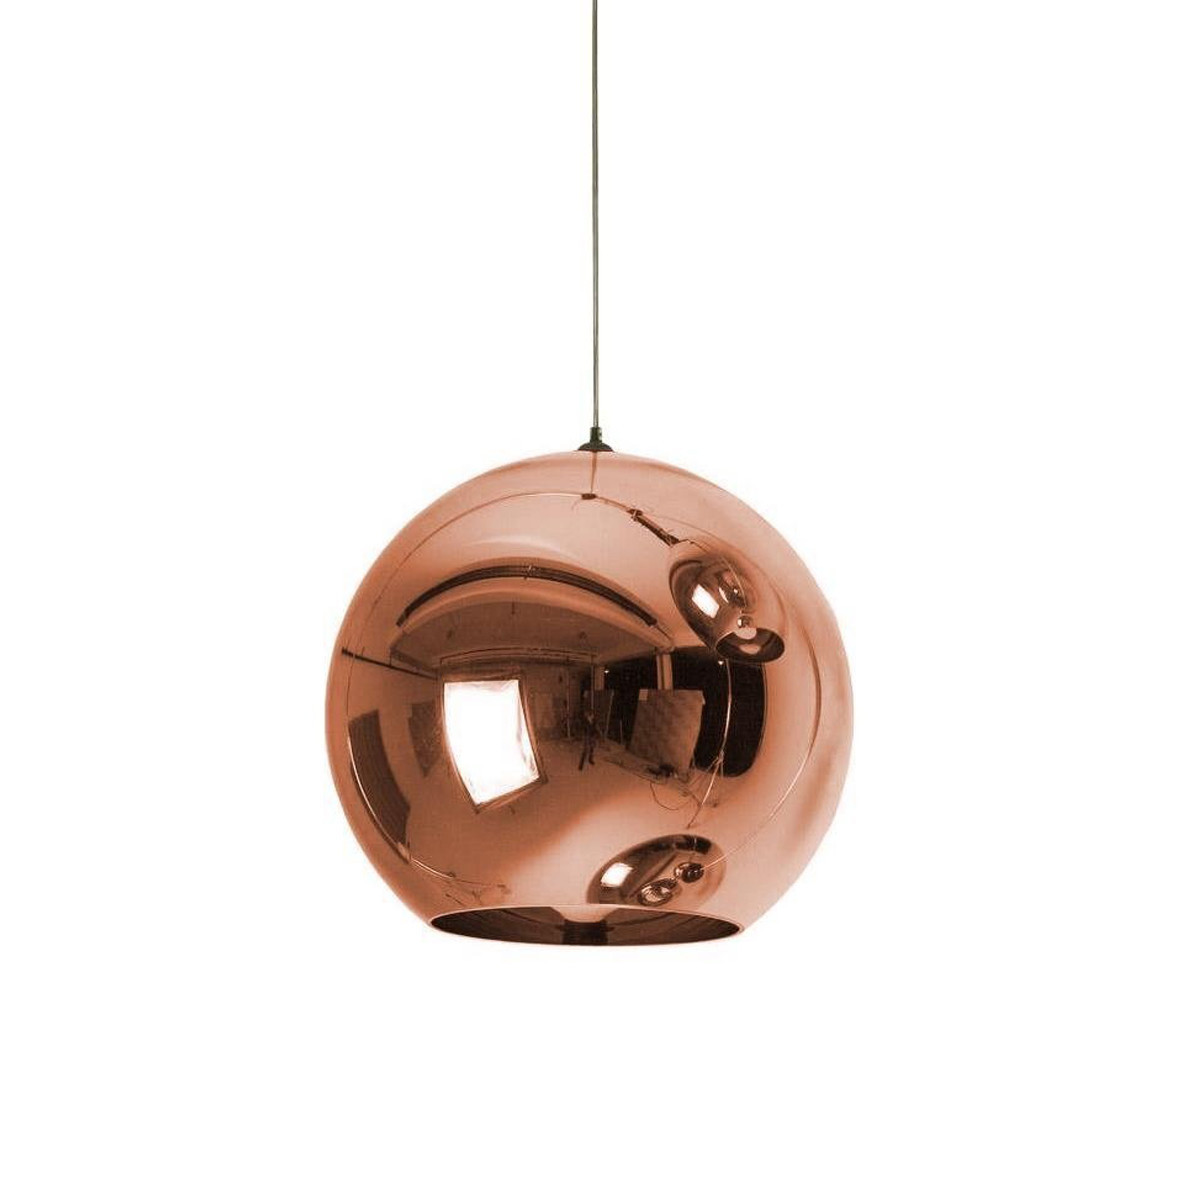 kitchen pendant track lighting fixtures copy. SKU #ASOL1079 Replica Tom Dixon Copper Pendant Is Also Sometimes Listed Under The Following Manufacturer Numbers: UP0010-20, UP0010-25, UP0010-30, Kitchen Track Lighting Fixtures Copy